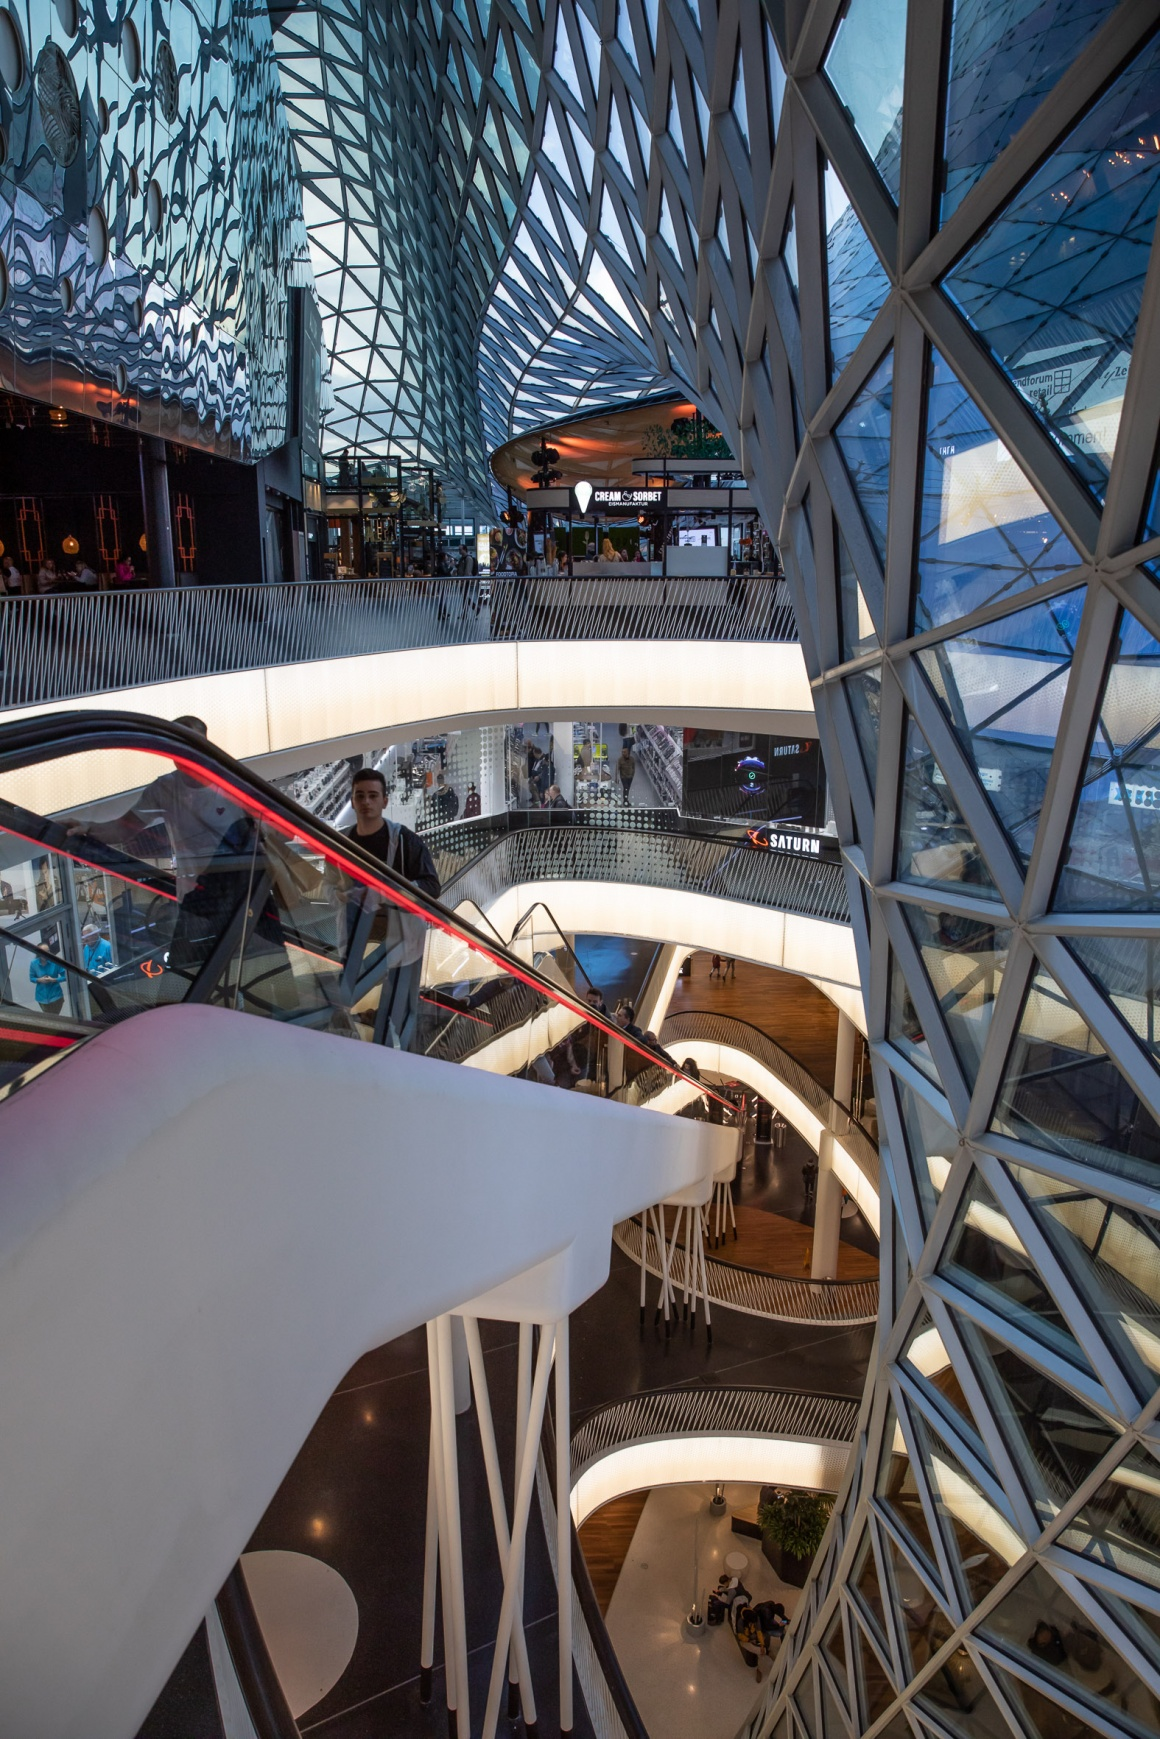 View into a shopping mall with several floors and elevators and glass walls...